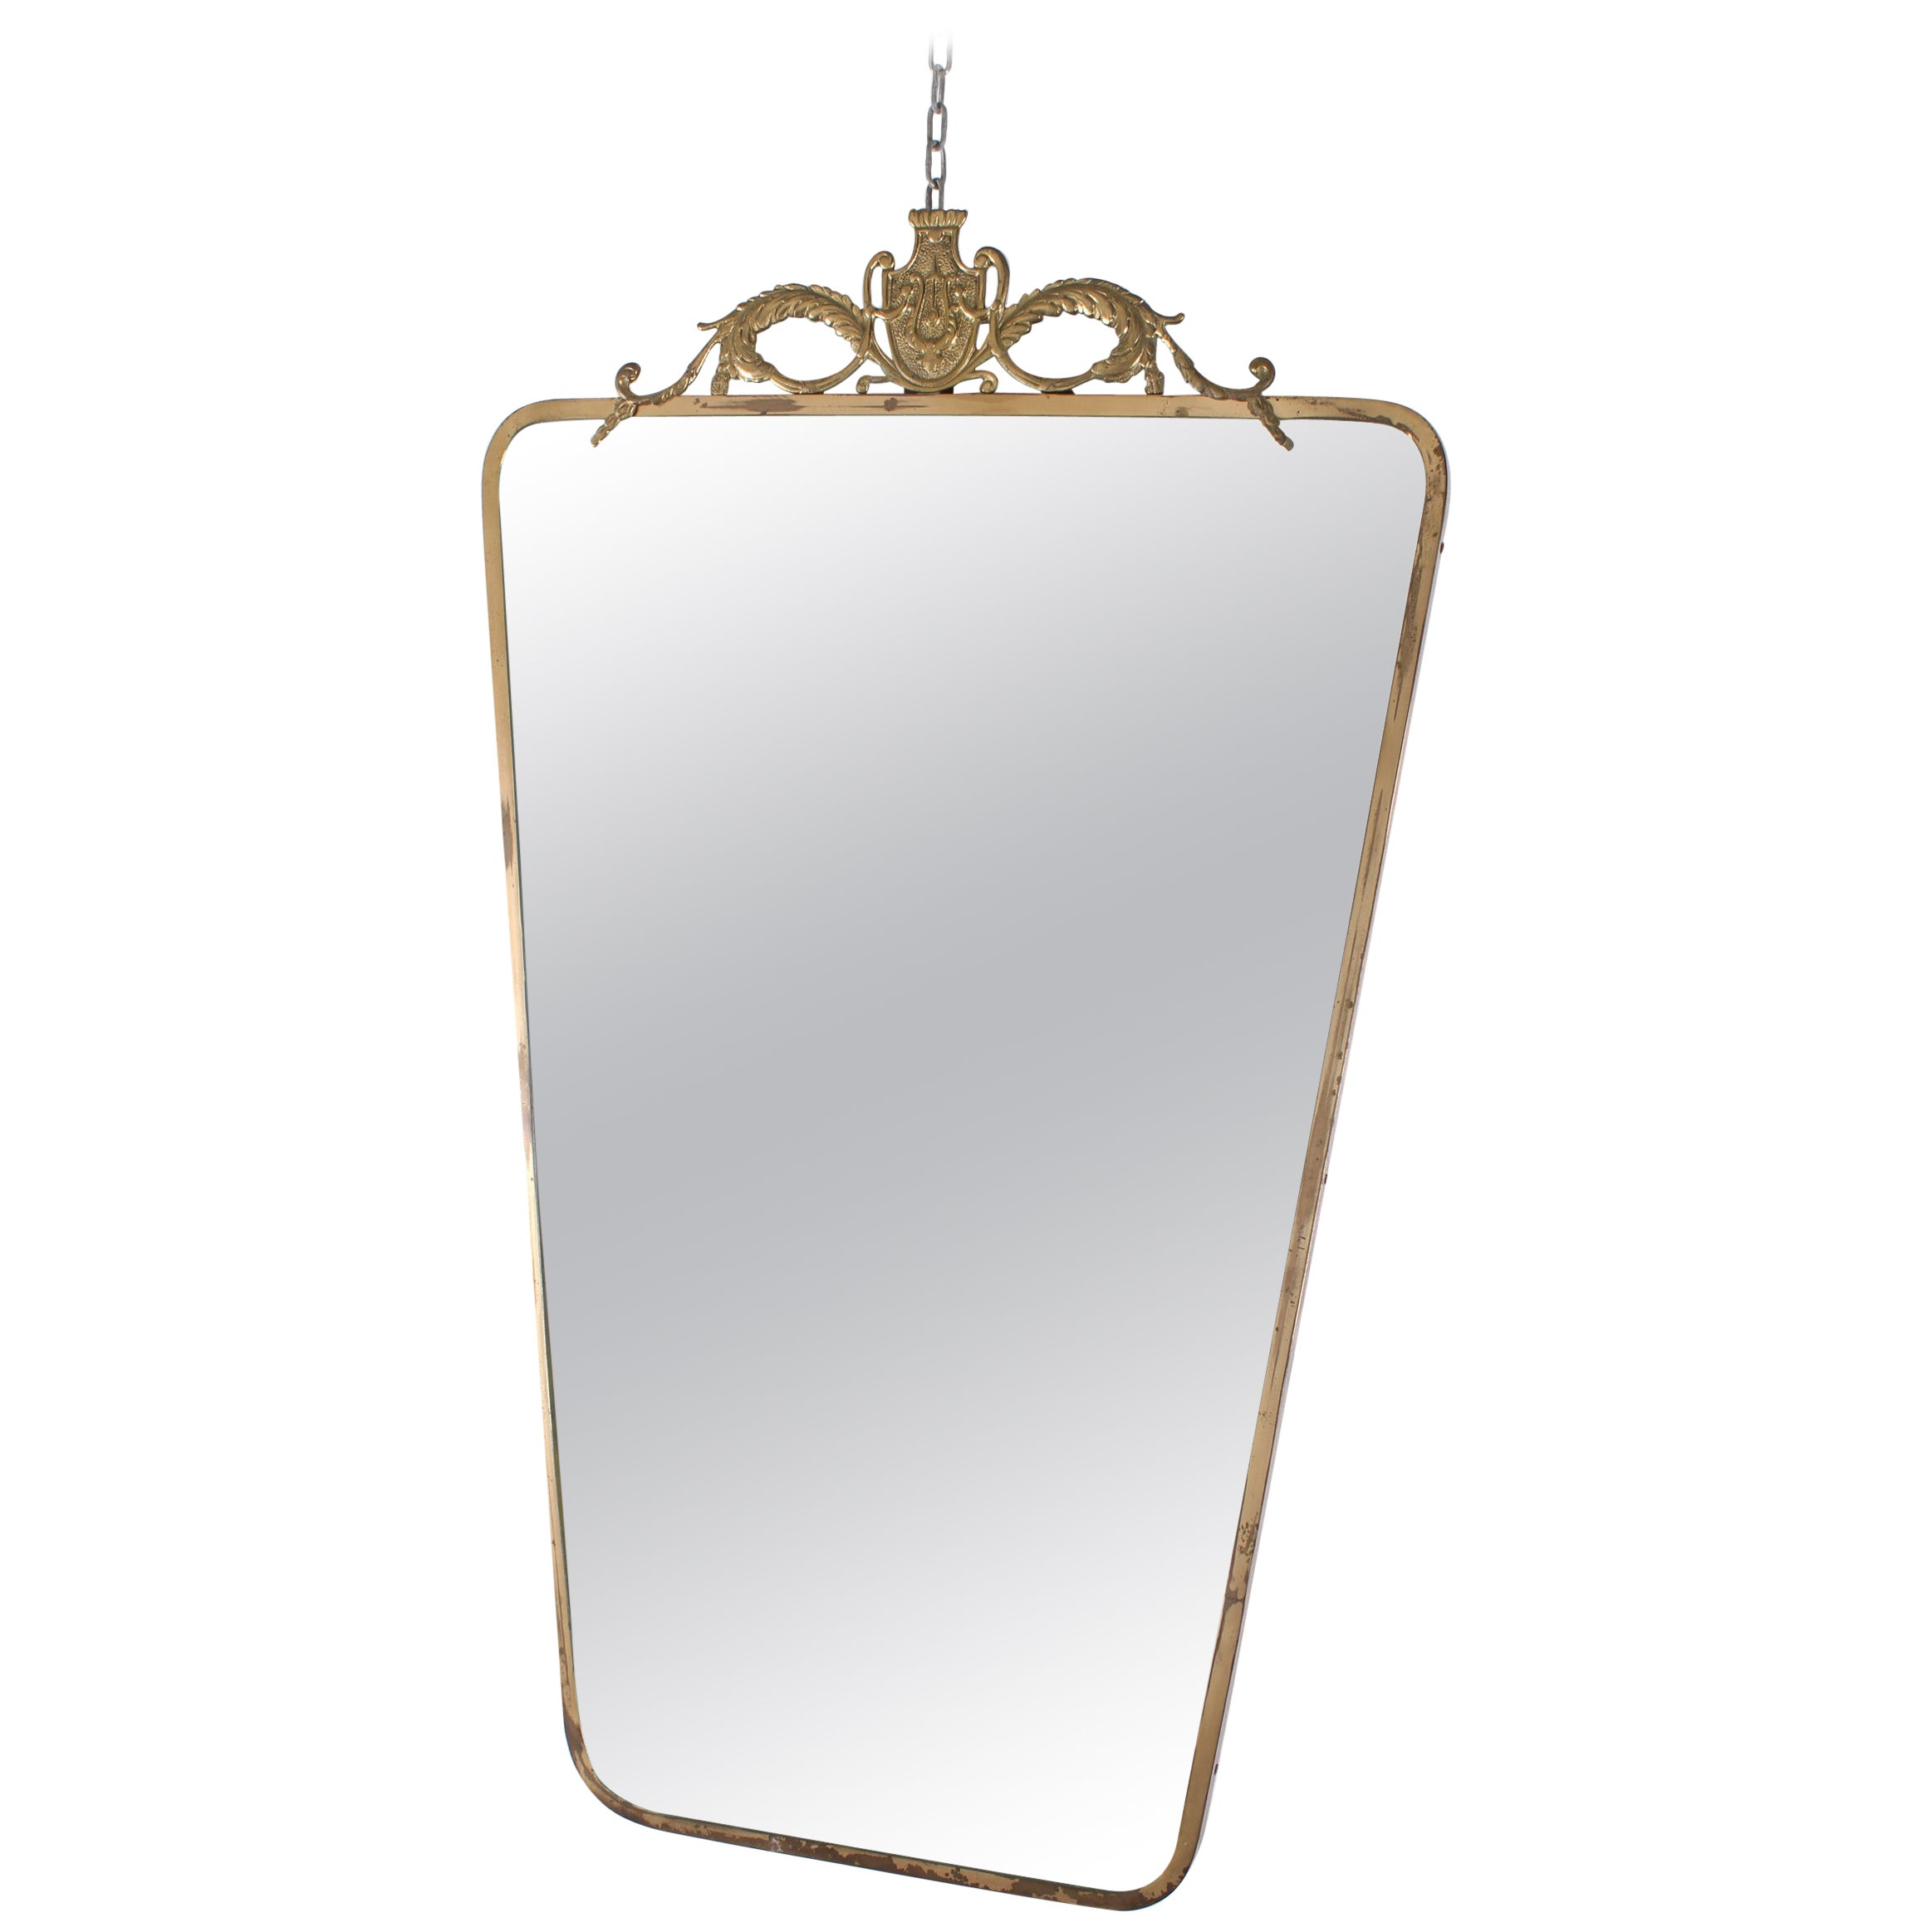 Art Deco Italian Brass Wall Mirror Pier Luigi Colli Style, 1950s